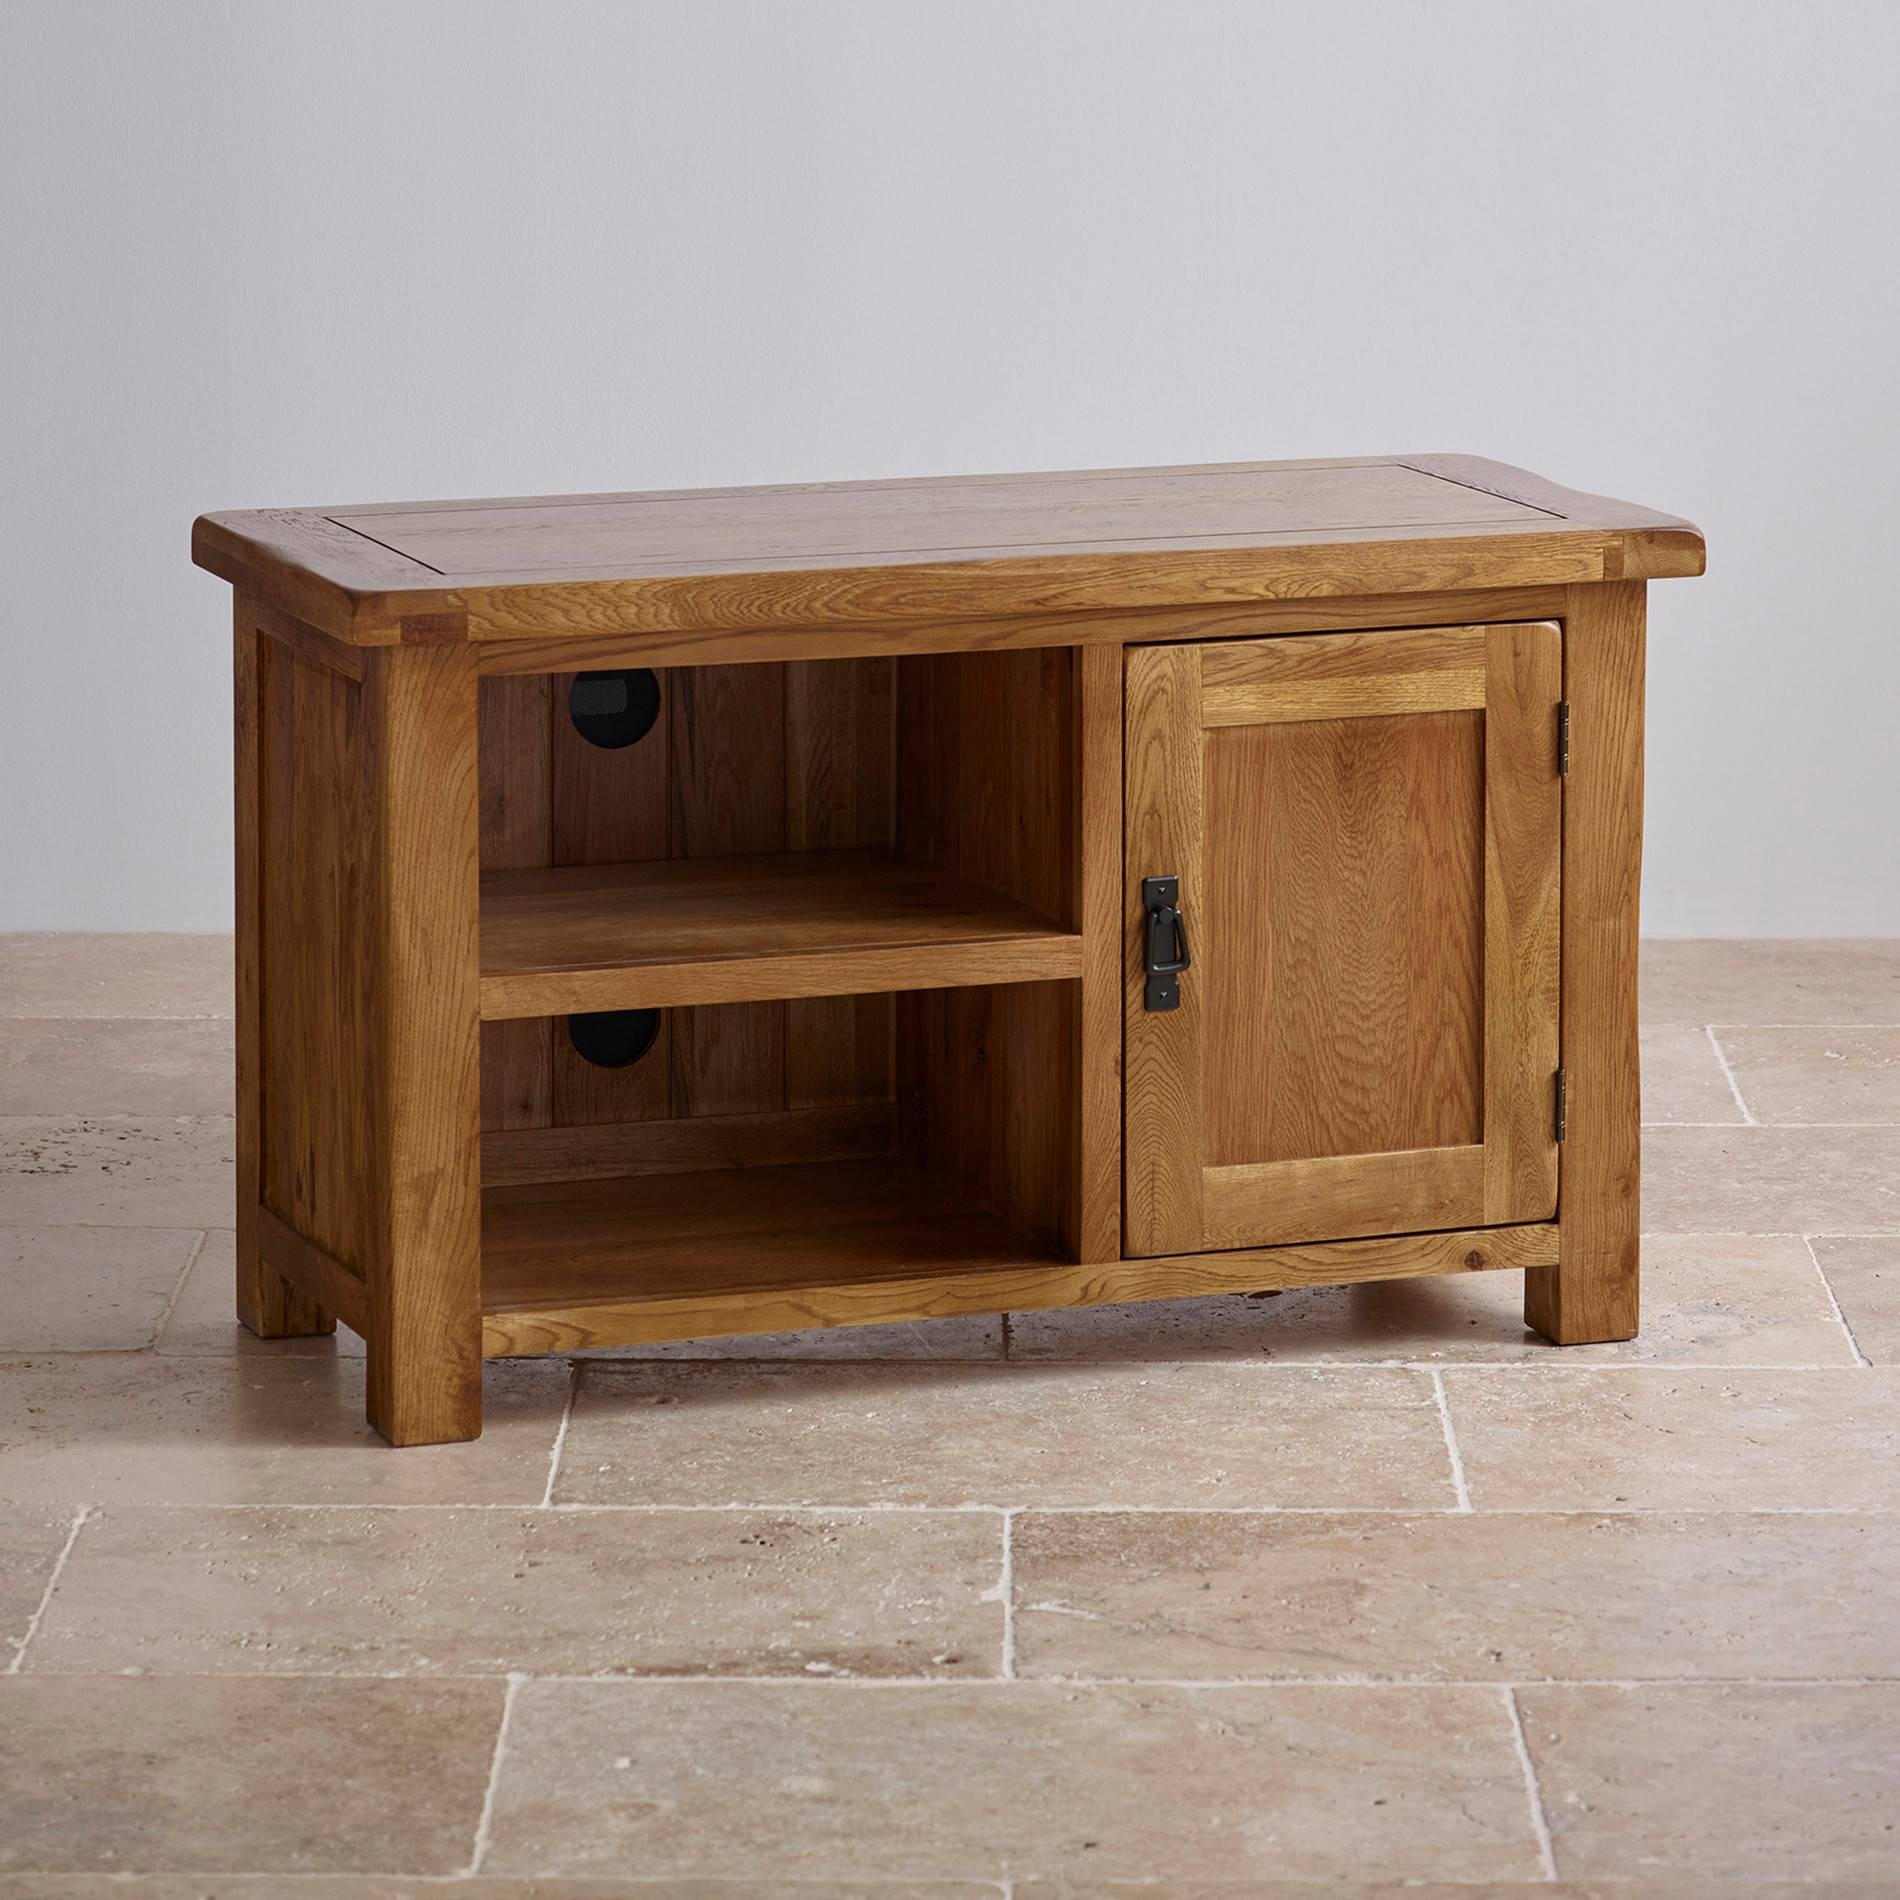 Original Rustic Tv Cabinet In Solid Oak | Oak Furniture Land With Oak Tv Cabinets (View 4 of 15)